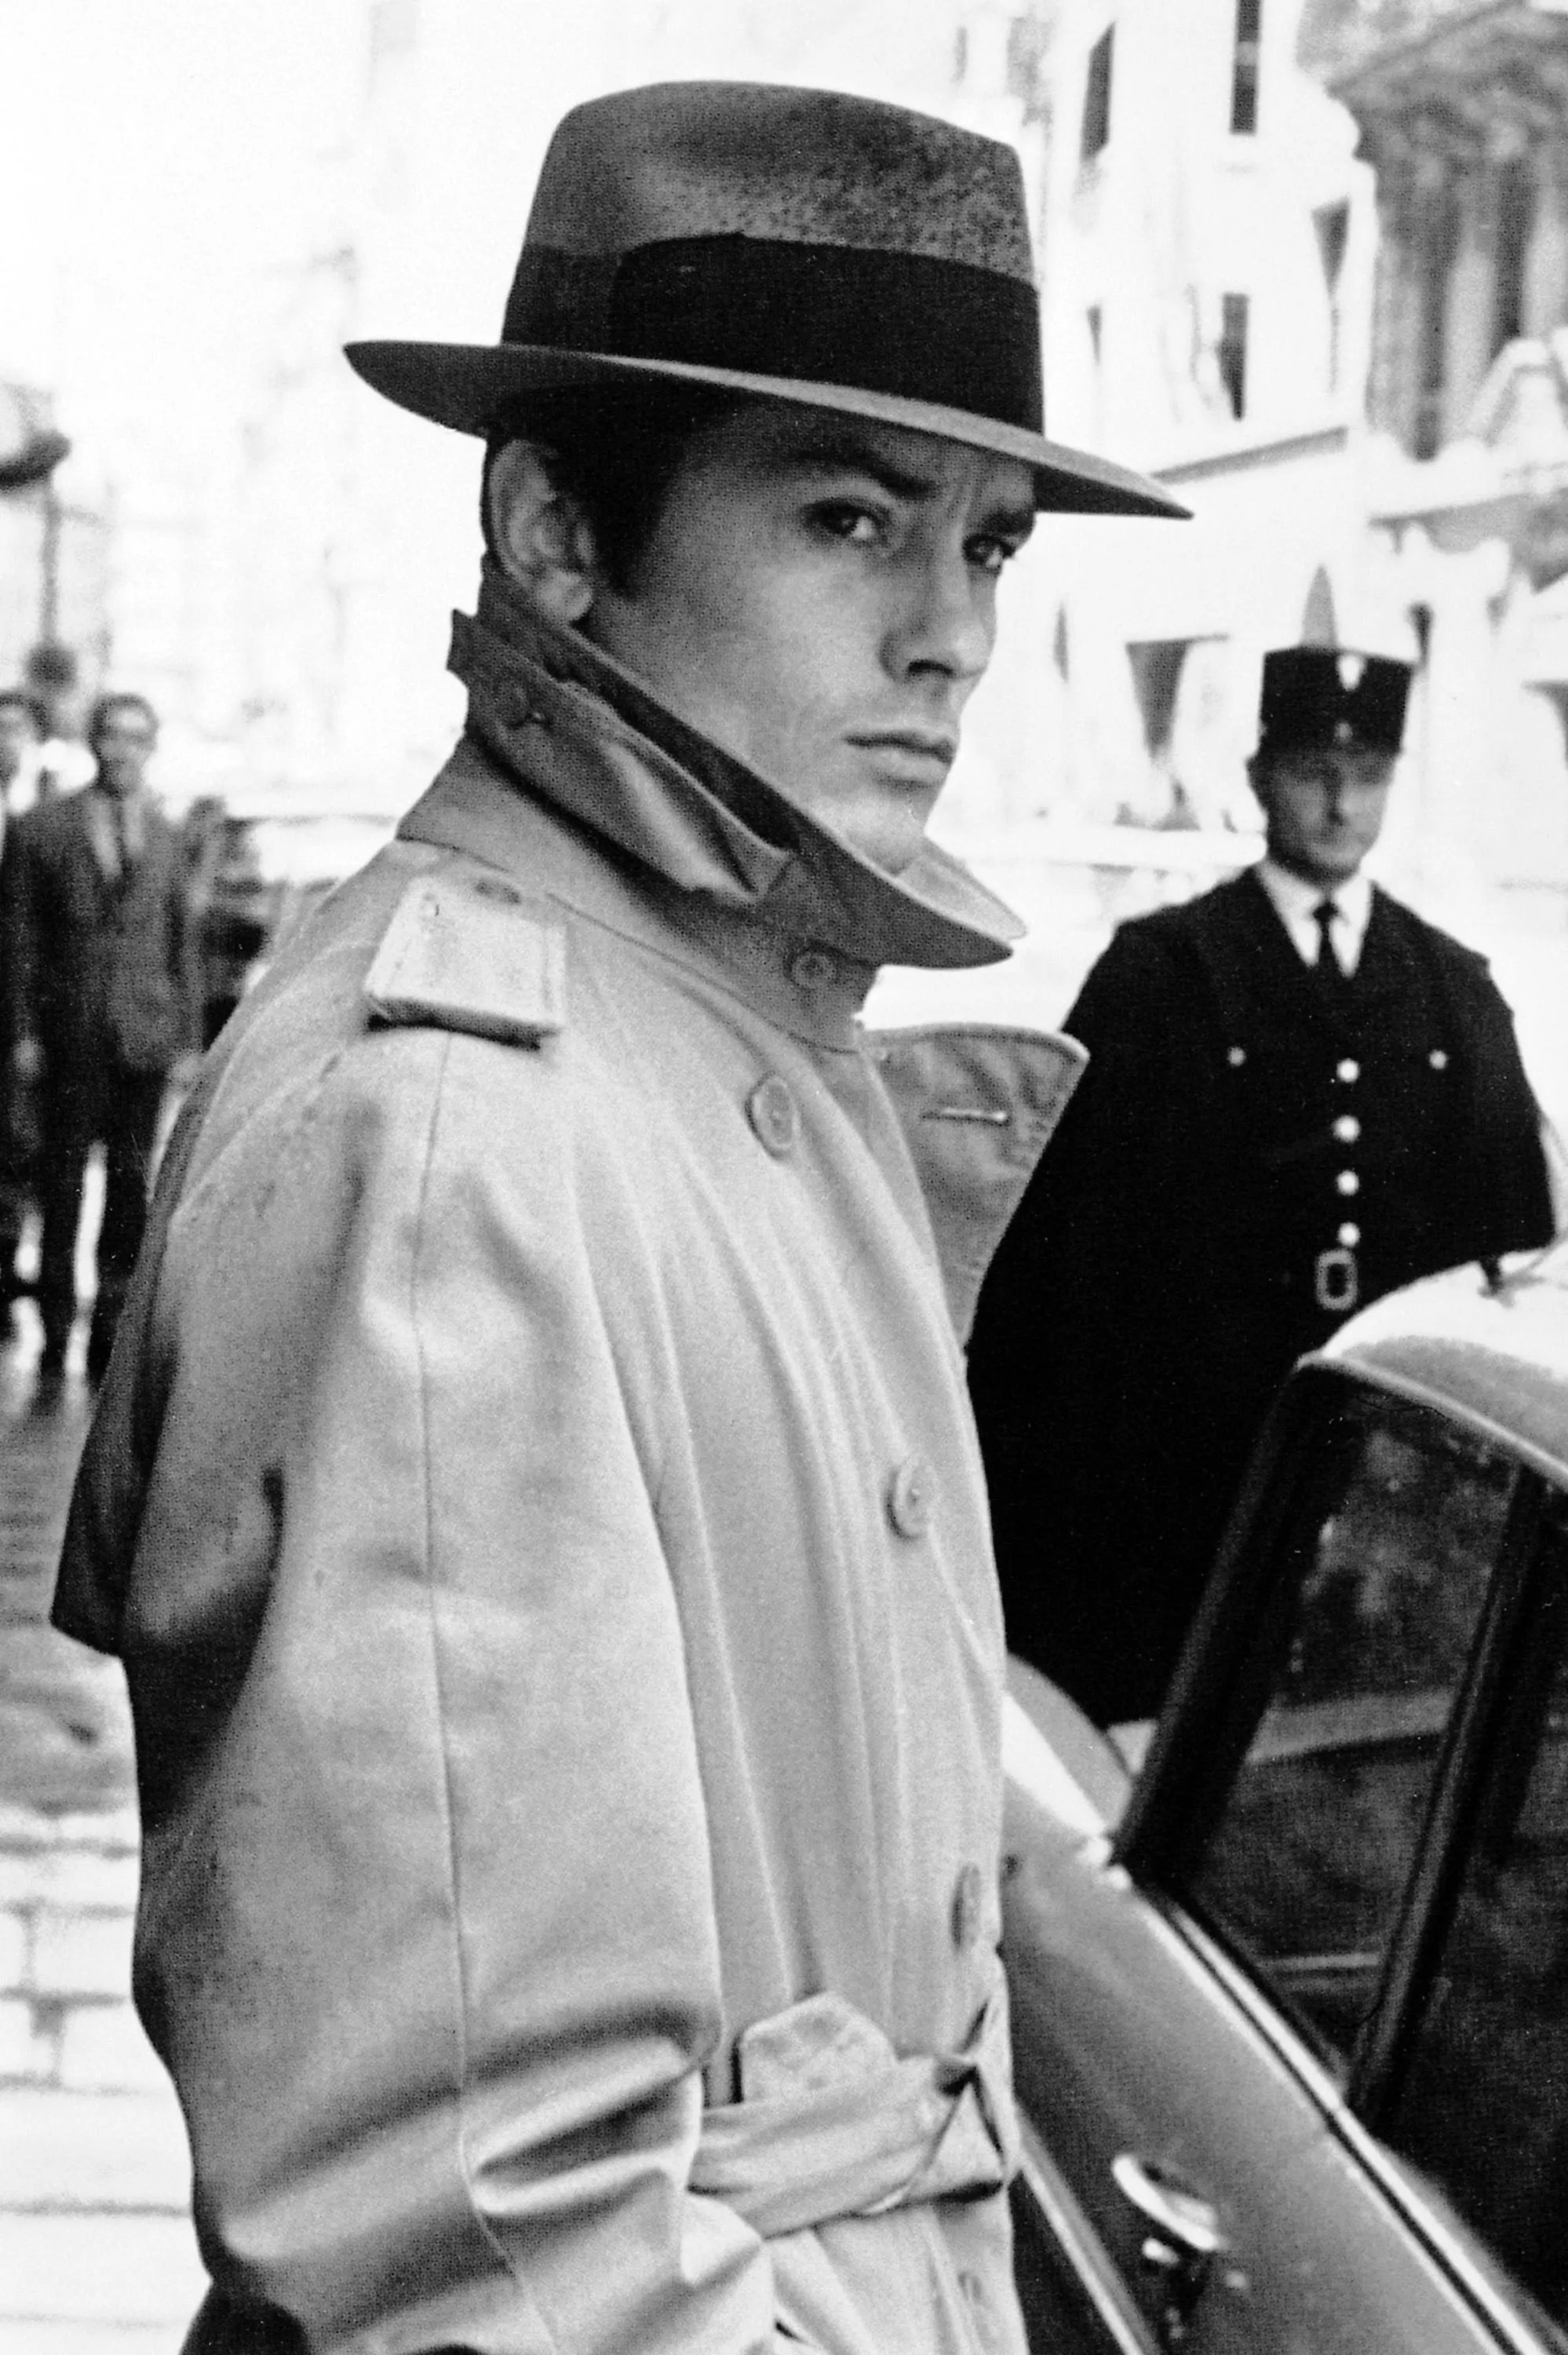 Jean-pierre Melville Films : jean-pierre, melville, films, Jean-Pierre, Melville, Retrospective, Treatment, Vogue